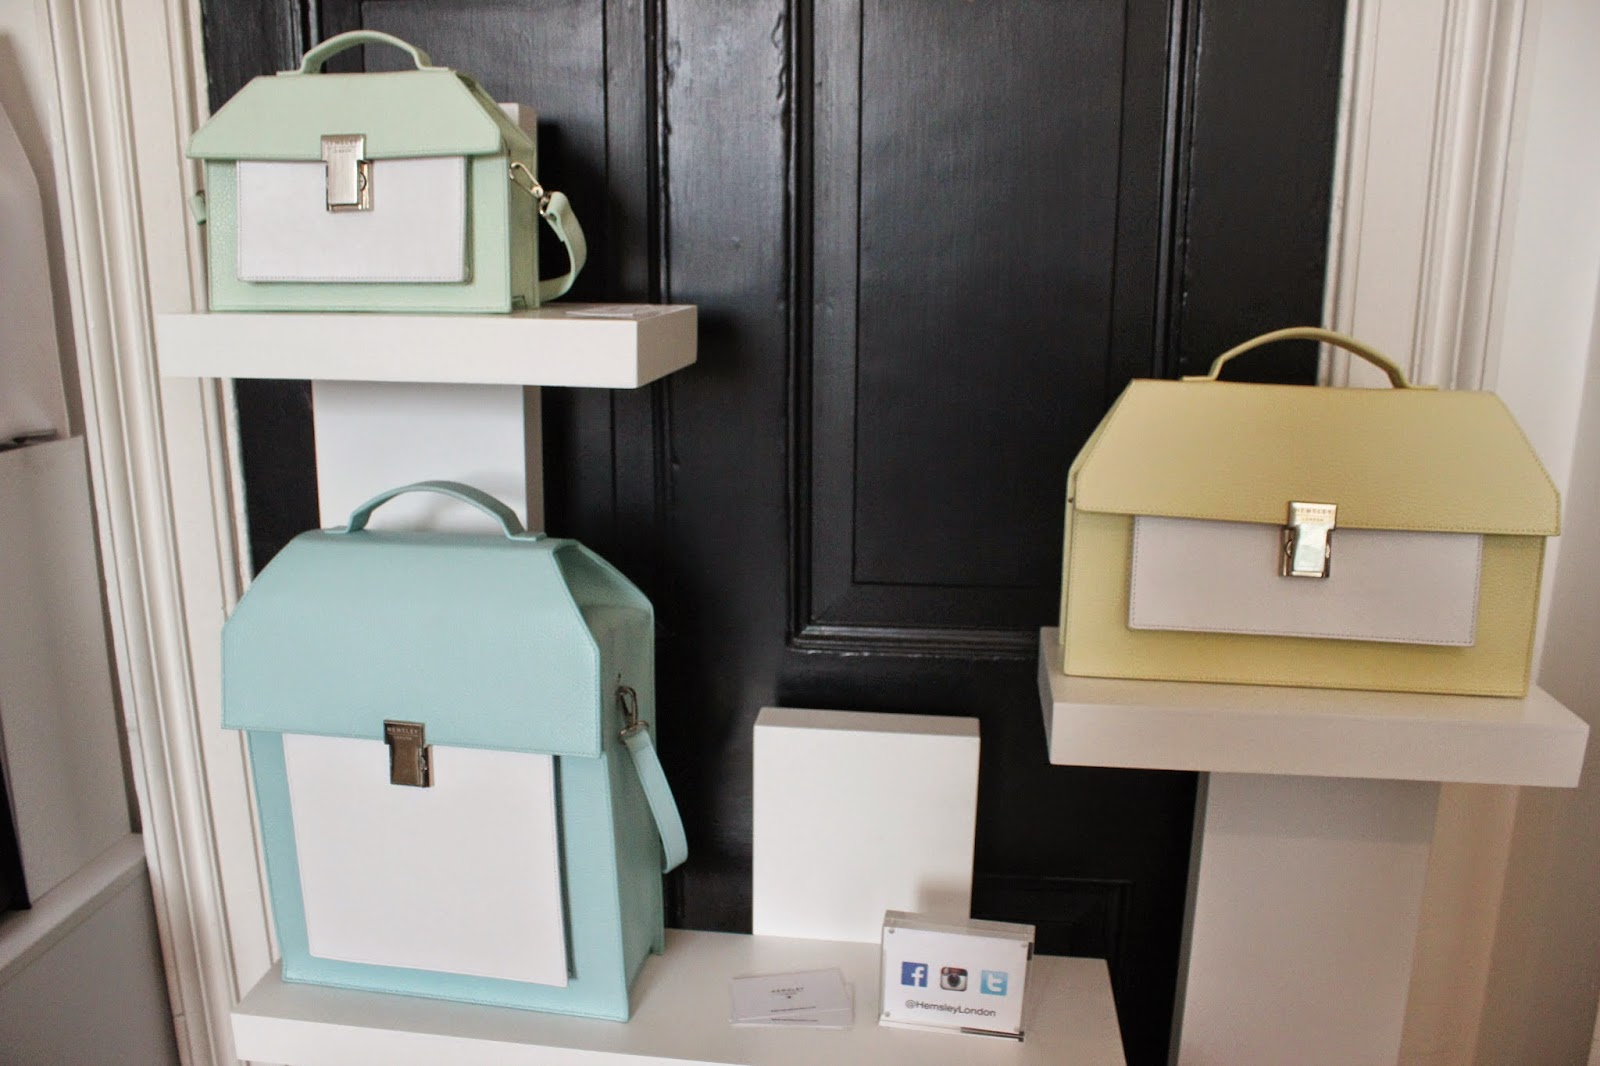 london-fashion-week-2014-lfw-spring-summer-2015-blogger-fashion-somerset-house-bags-accessories-hemsley